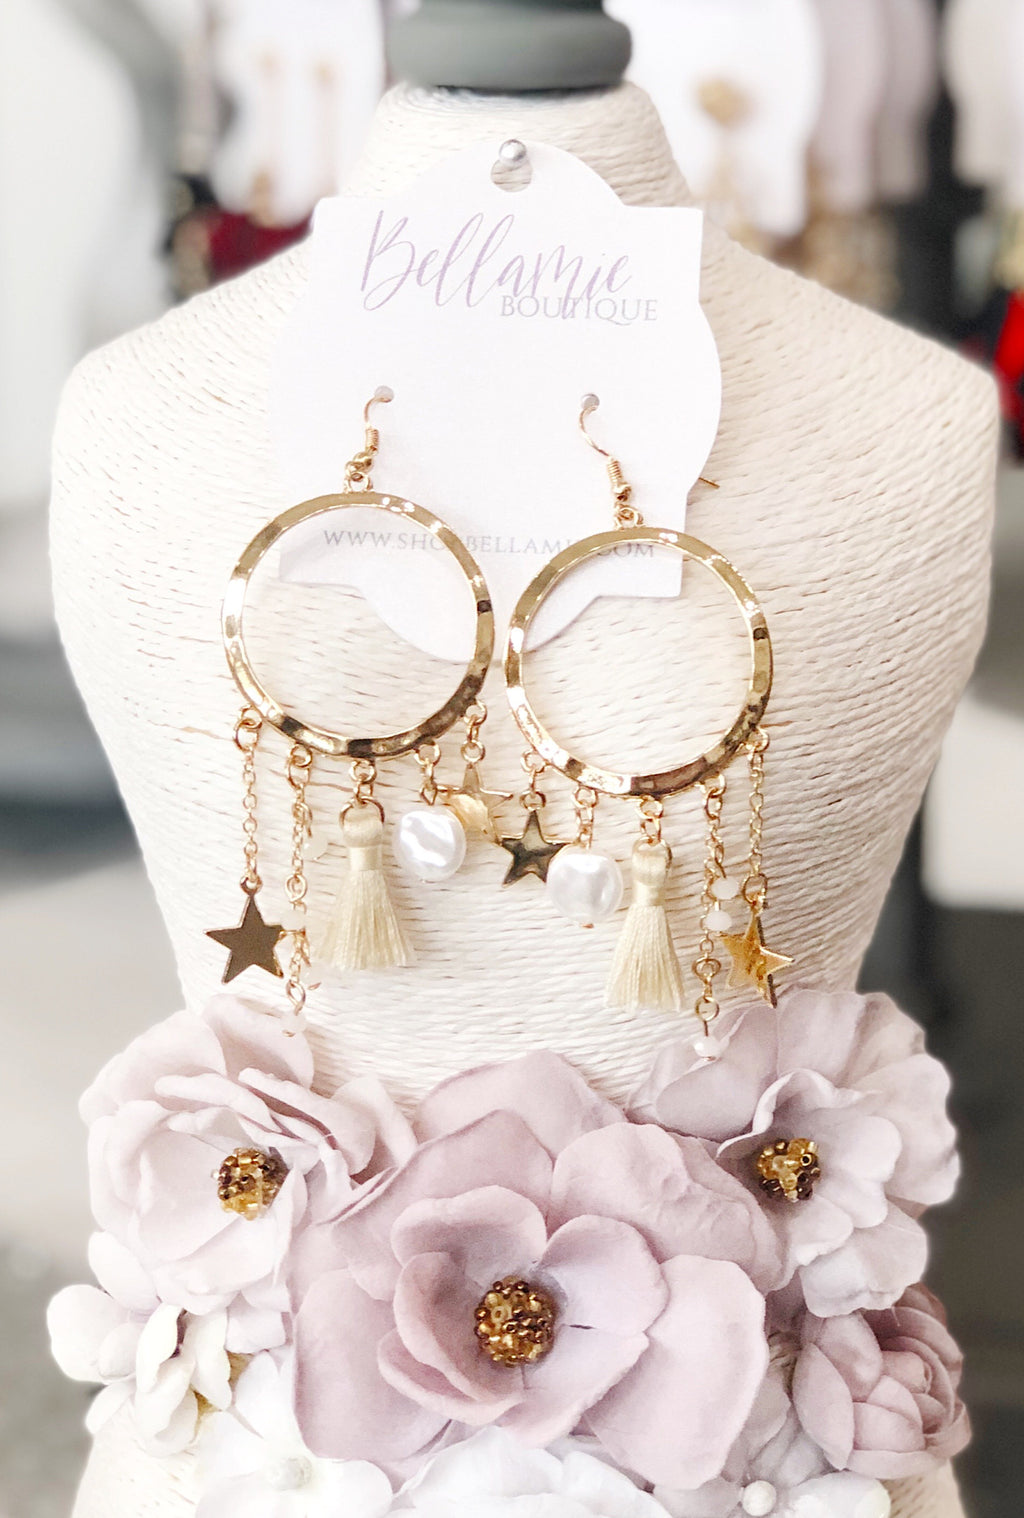 Cascading Star Earrings - Bellamie Boutique